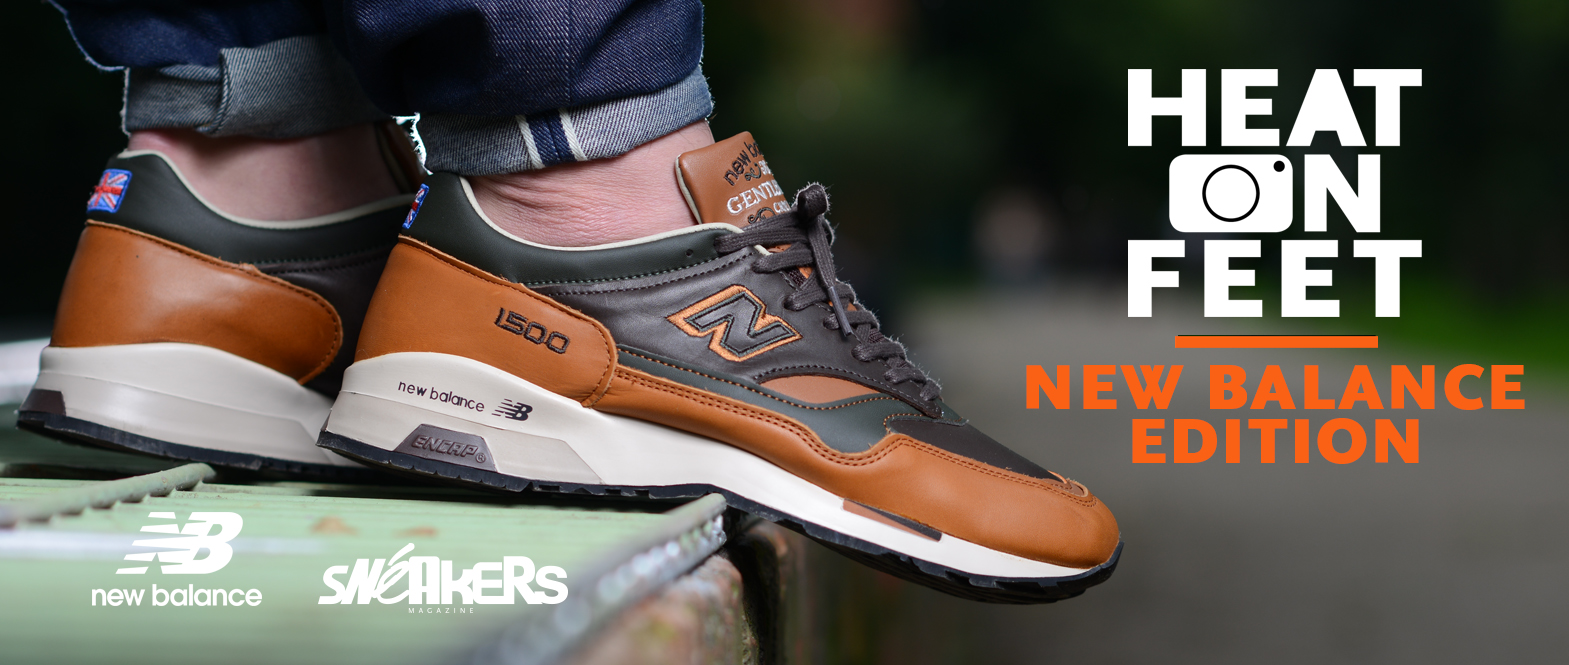 low priced b8a08 70e84 Heat On Feet Contest – The New Balance Edition - Sneakers ...